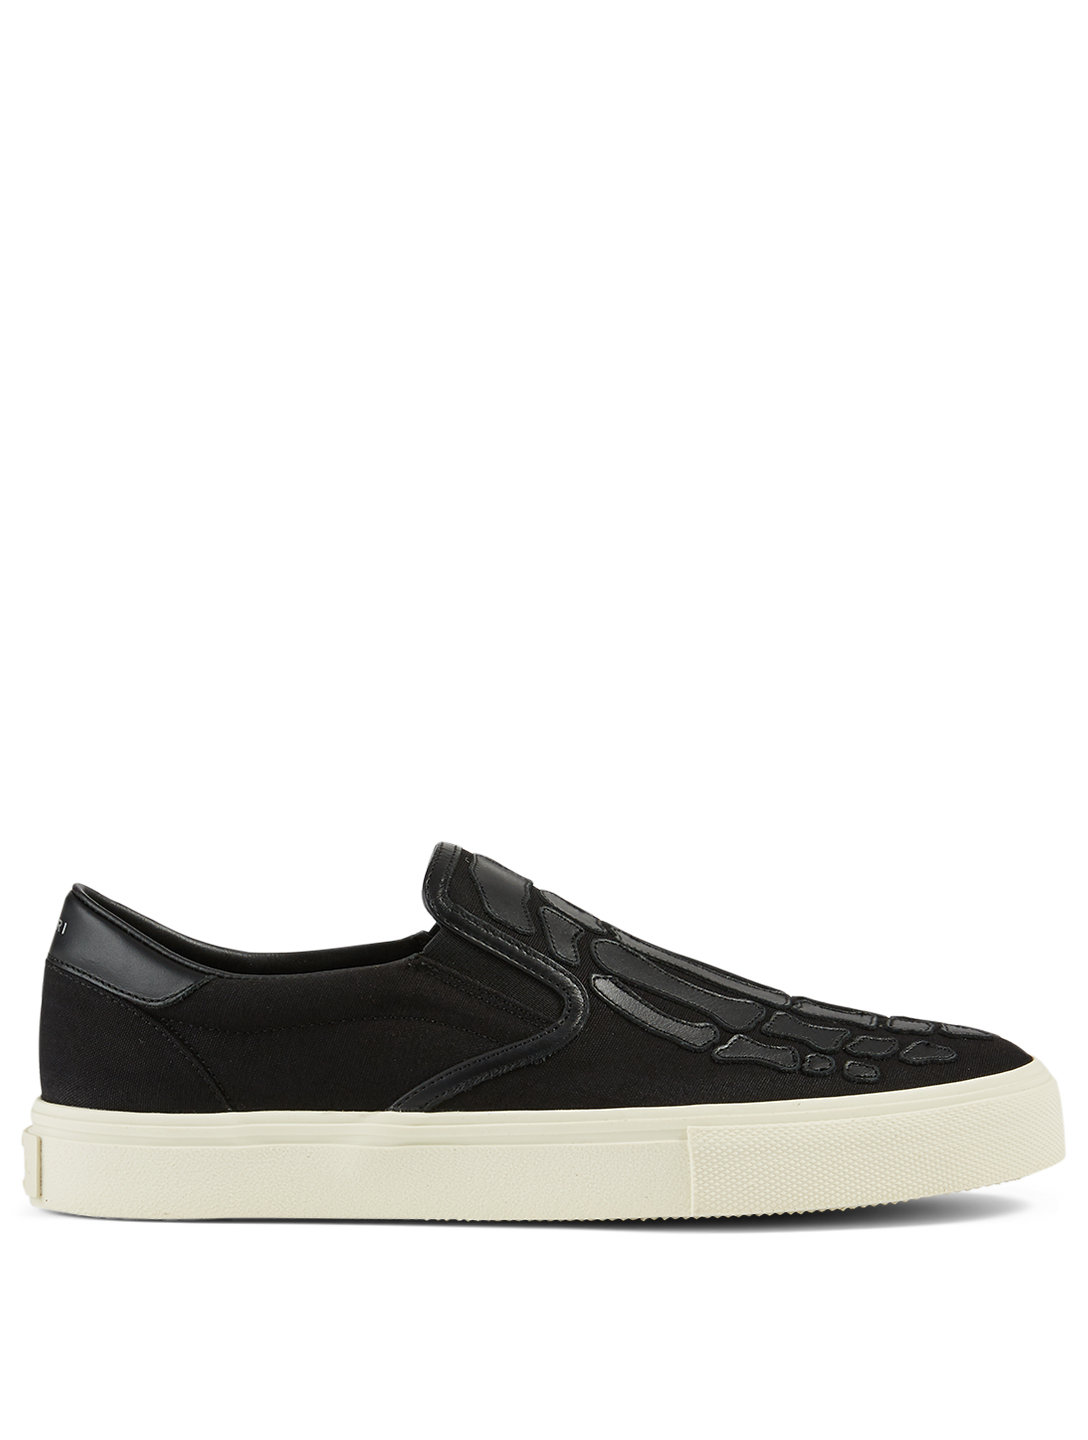 AMIRI Skel-Toe Canvas And Leather Slip-On Sneakers Men's Black